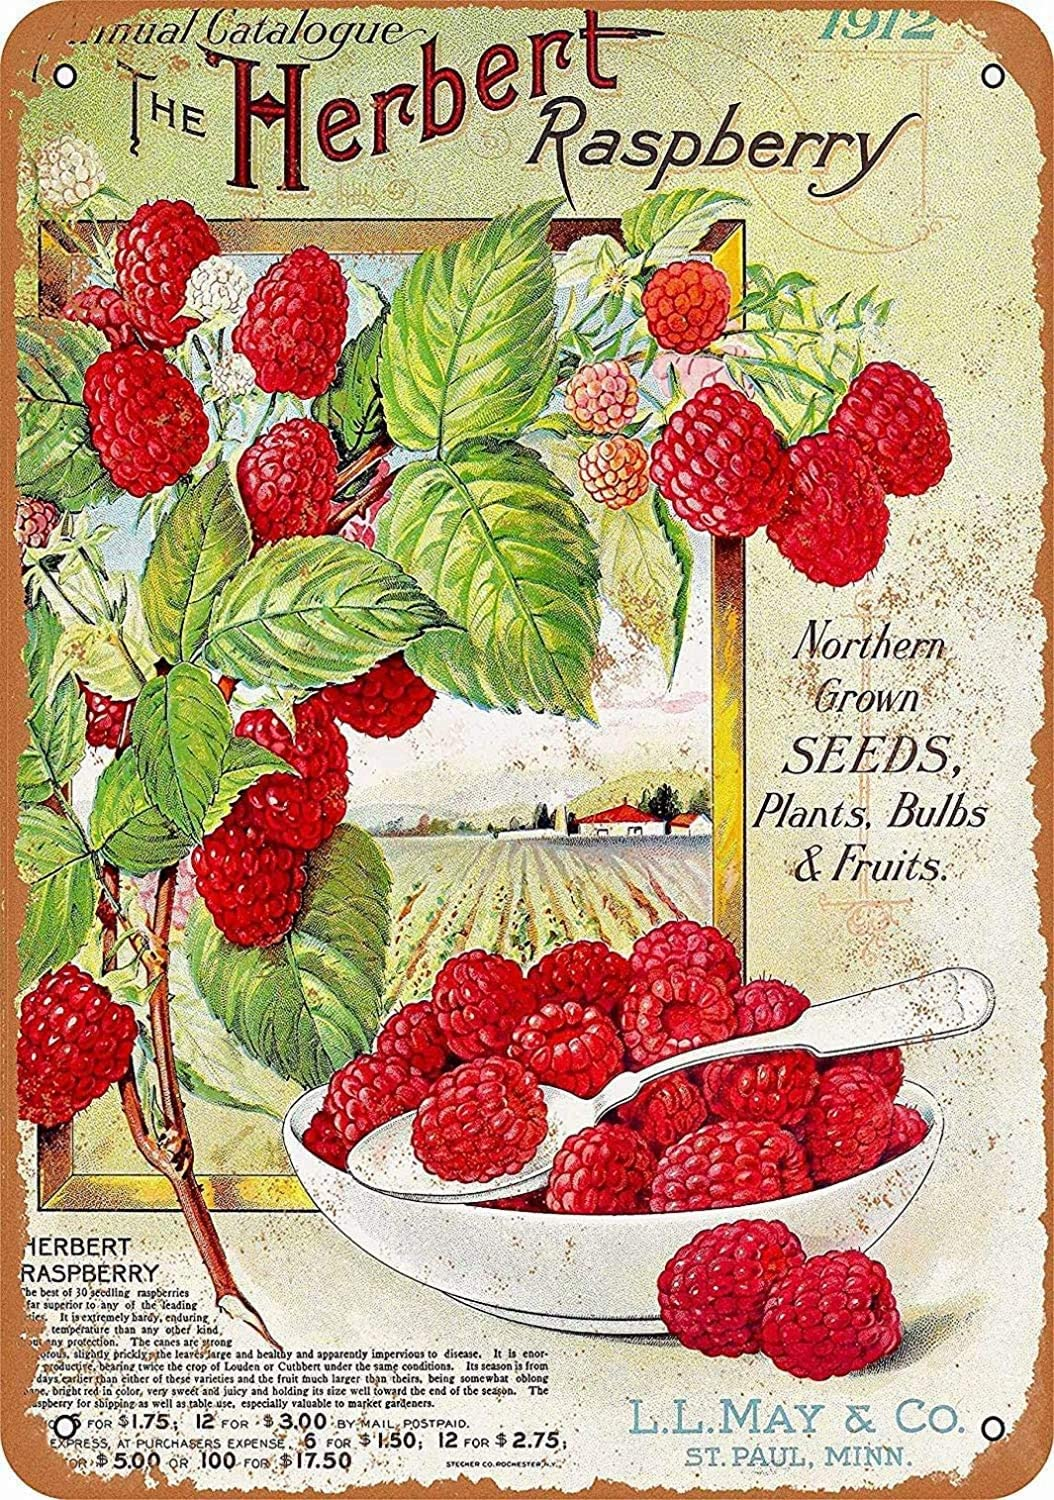 XUNXINYOUBI Vintage Retro 8x12 Sign 1912 Herbert Raspberries Funny Fruits Vegetables Food Sweet Summer Wall Decor Home Decor Novlety Tin Metal Sign